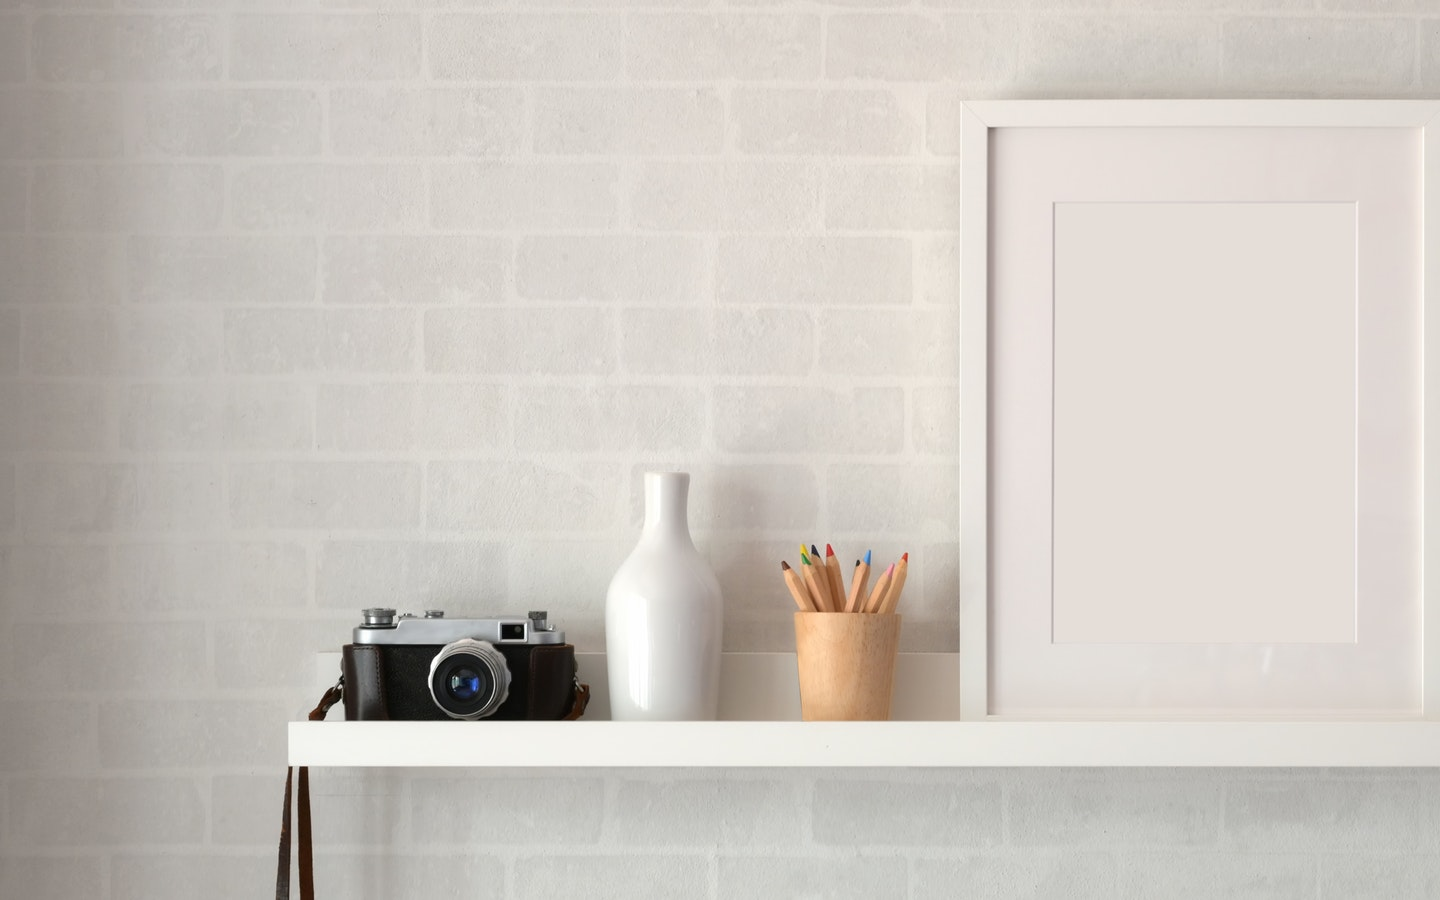 A film camera, pen holder, and a modern painting sitting on a table against a textured wall